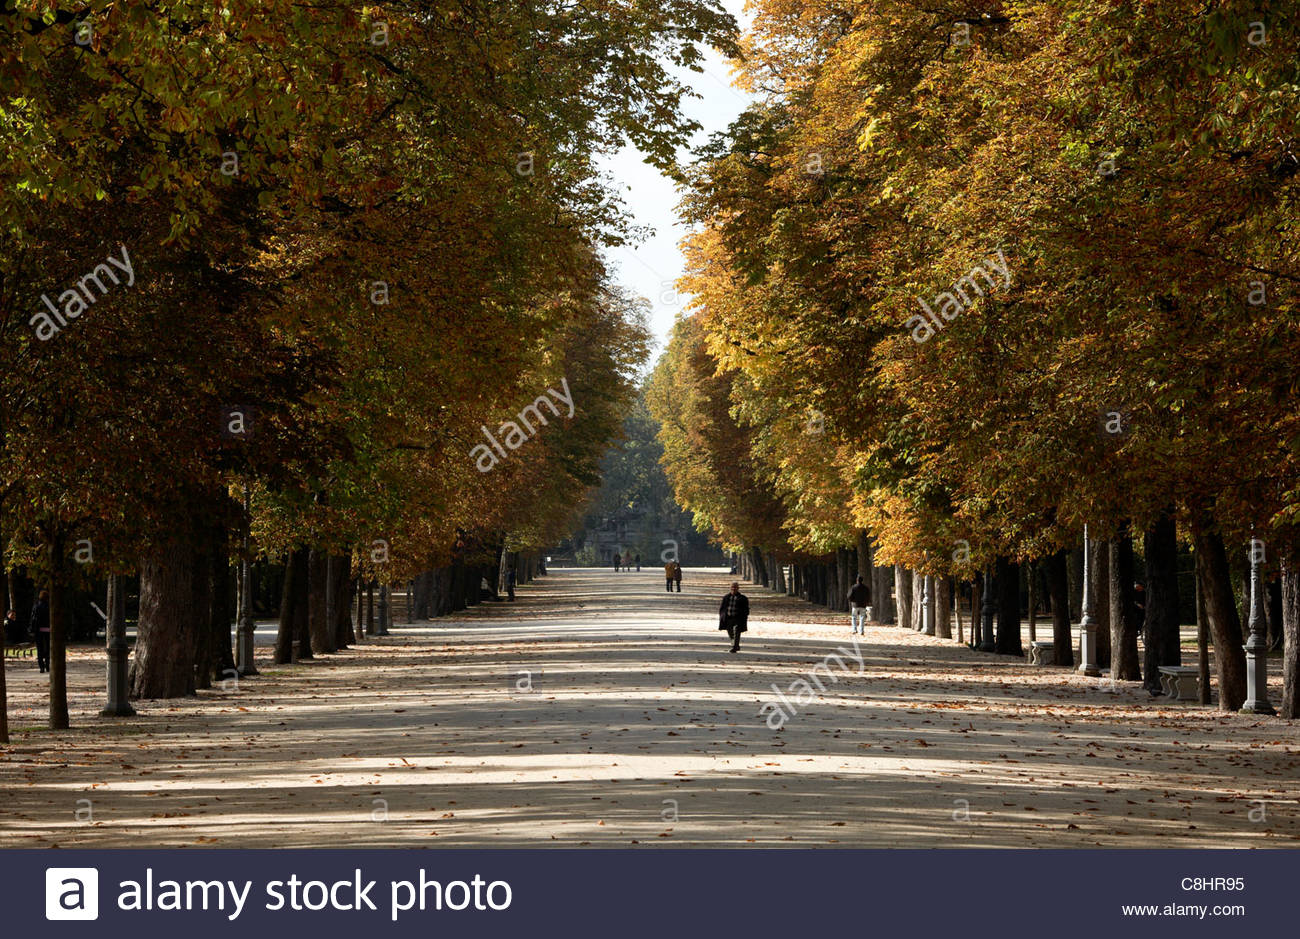 Parma residents stroll through tree-lined promenades in Parco Ducale. Stock Photo